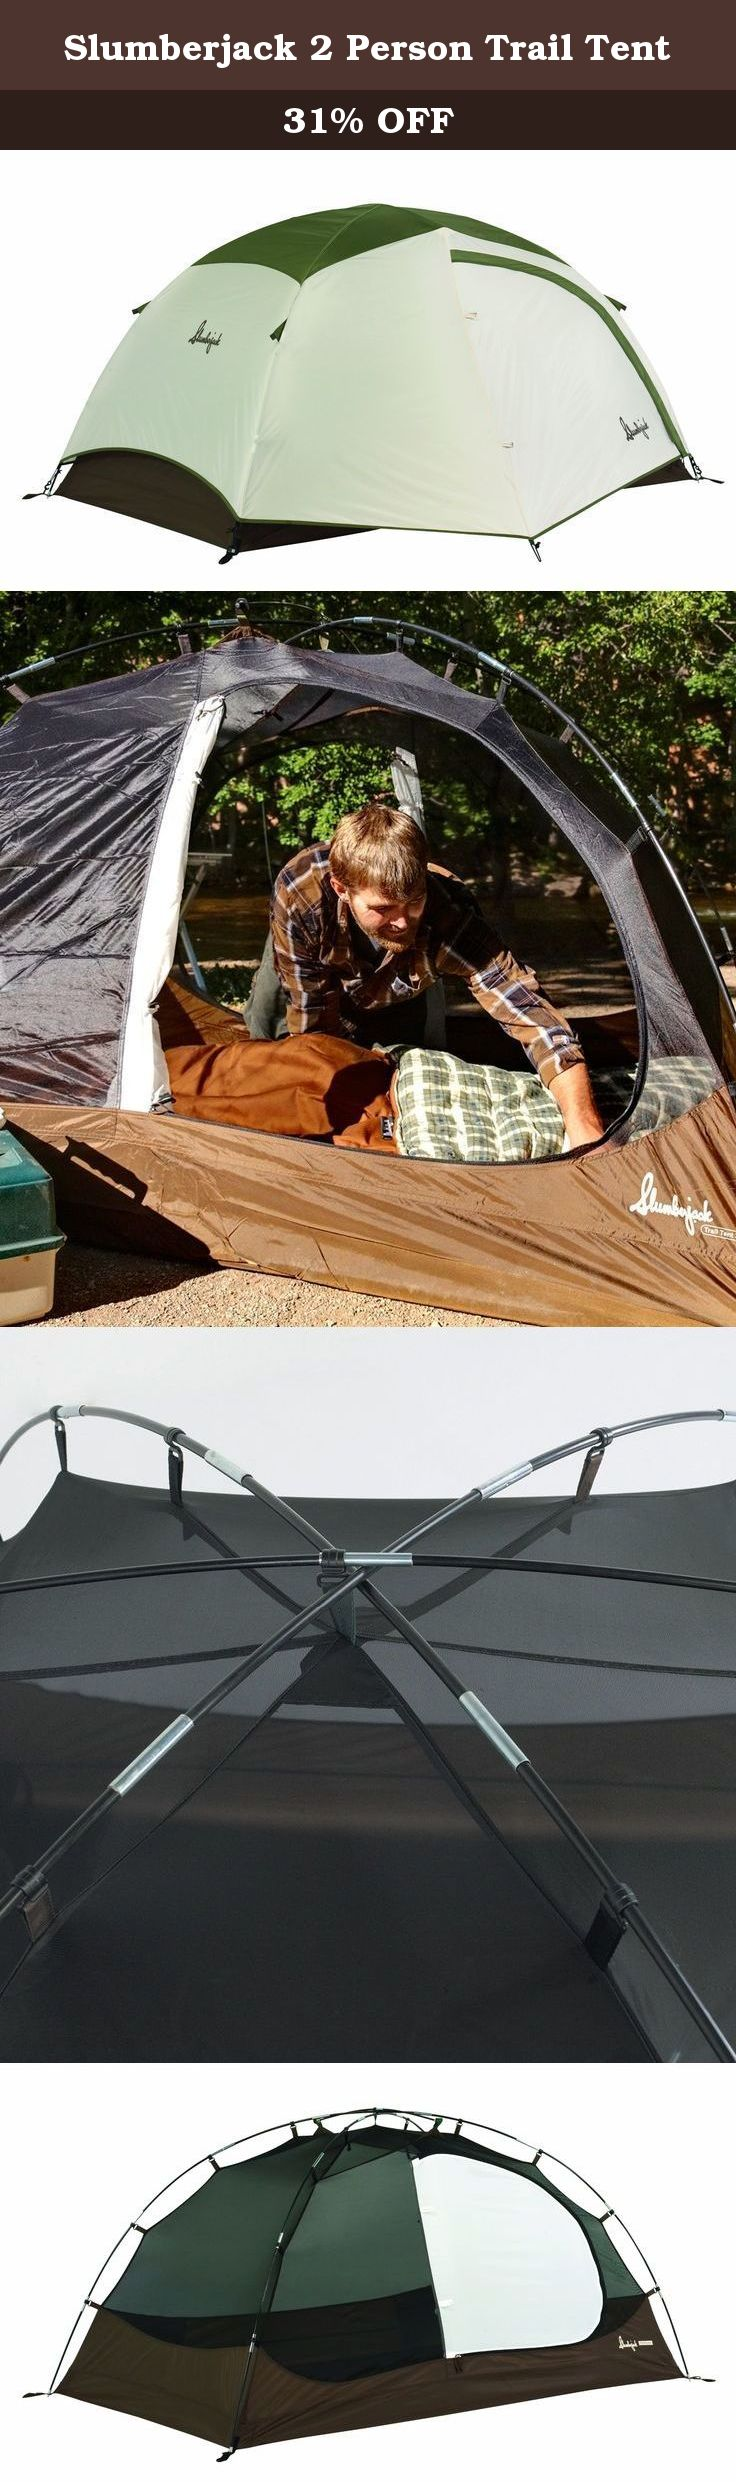 Slumberjack 2 Person Trail Tent. Ideal for backpacking fishing trips c&ing festival events or any weekend getaway. The Slumberjack Trail Tent offers ... & Slumberjack 2 Person Trail Tent. Ideal for backpacking fishing ...